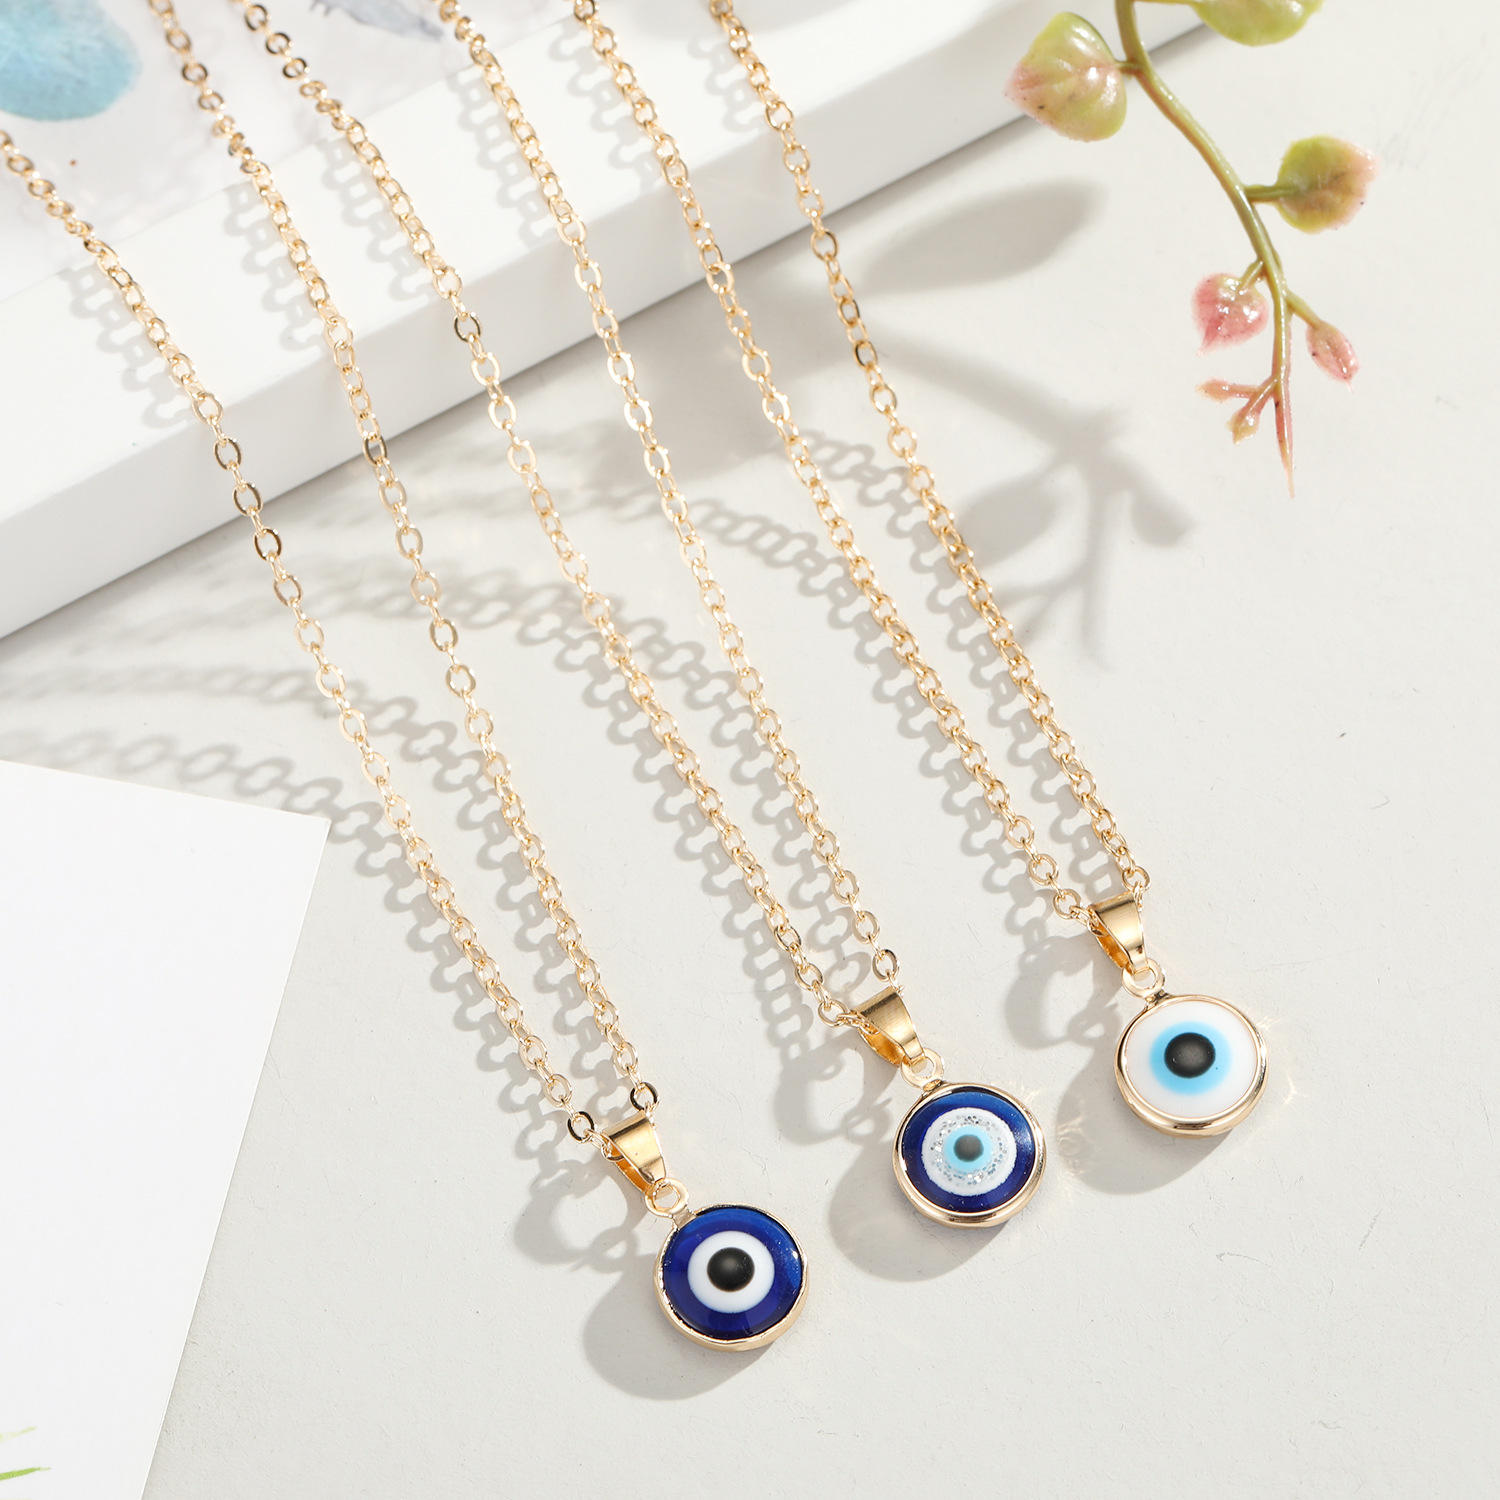 18k Gold Plated Clavicle Chain 10mm Round Beads Evil Eyes Necklace Blue Turkey Eye Pendant Necklace